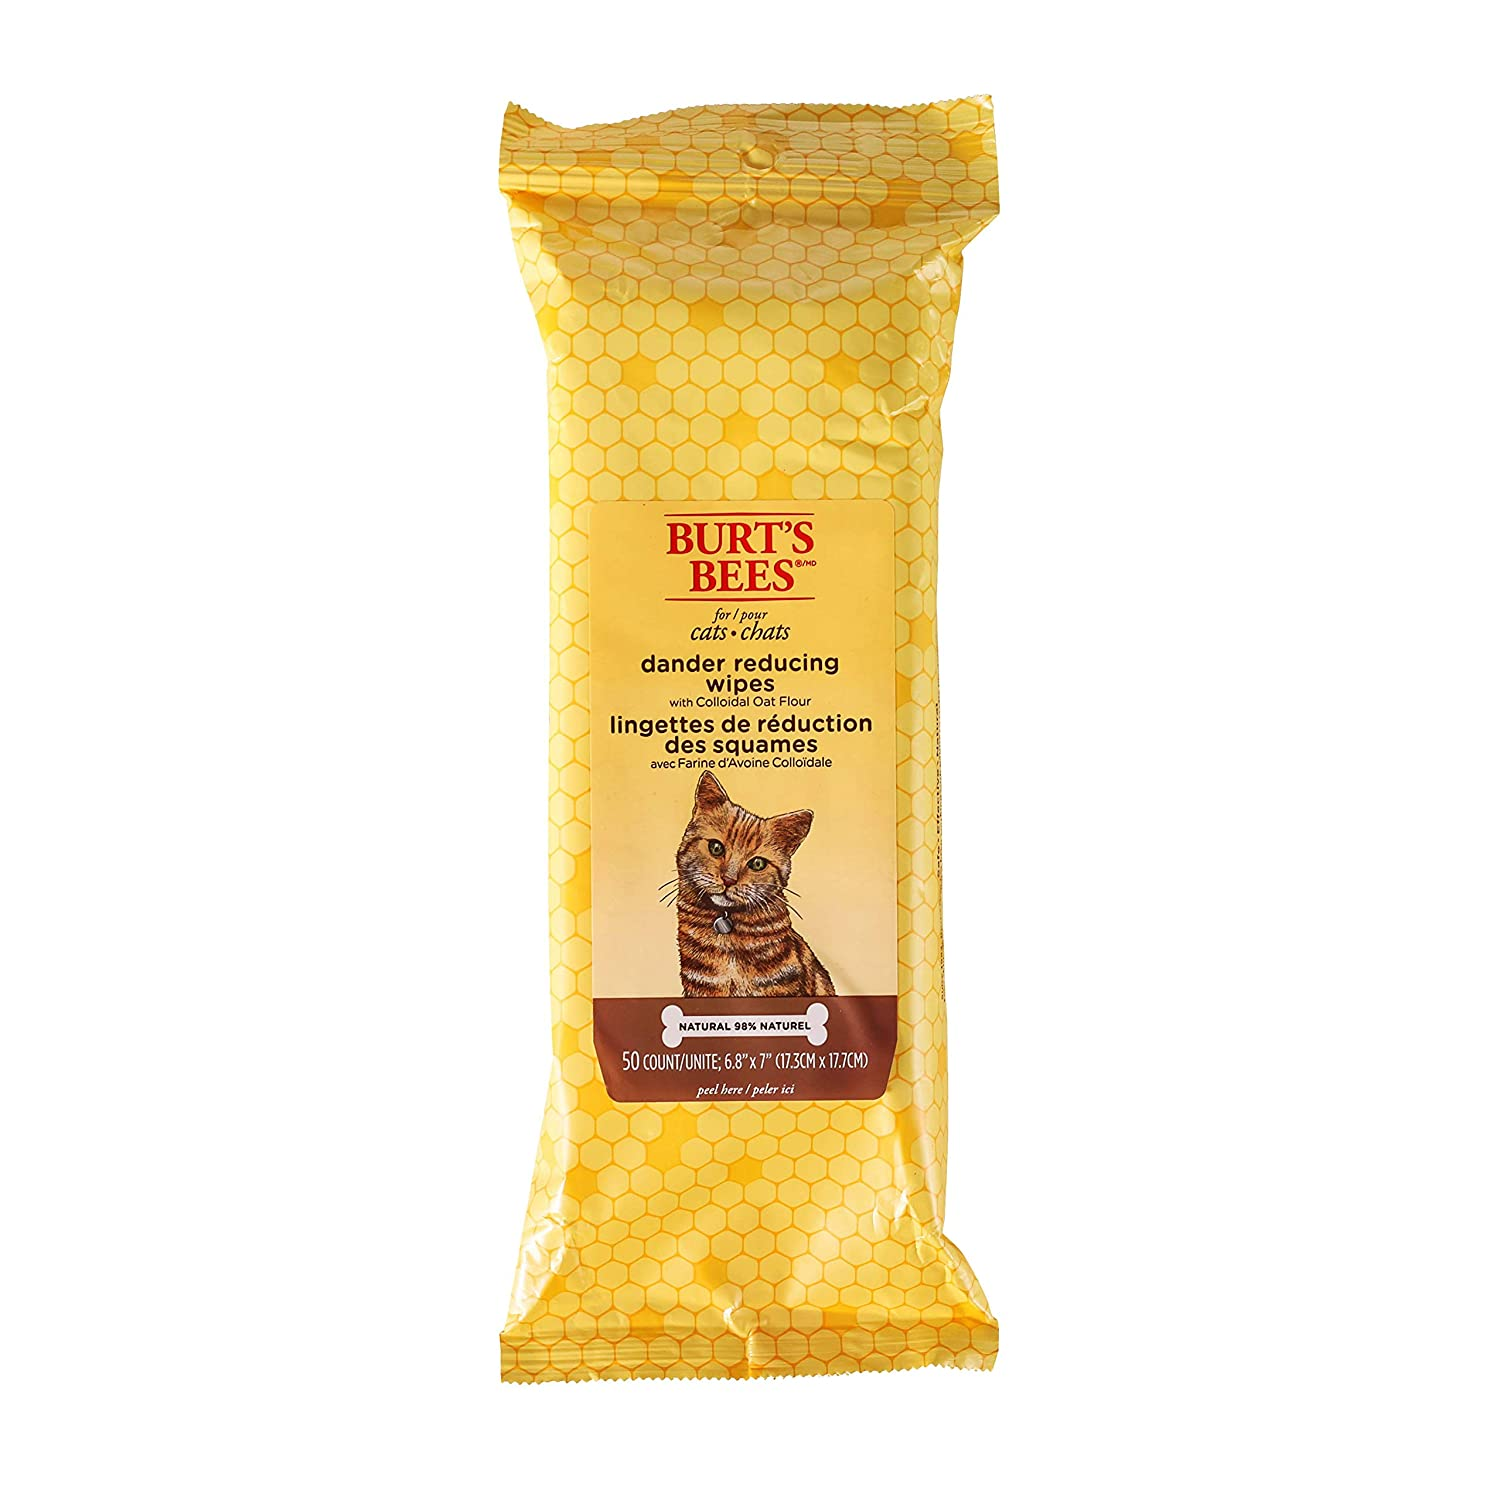 Burt's Bees for Cats Natural Dander Reducing Wipes | Kitten and Cat Wipes  for Grooming | Cruelty Free, Sulfate & Paraben Free, pH Balanced for Cats -